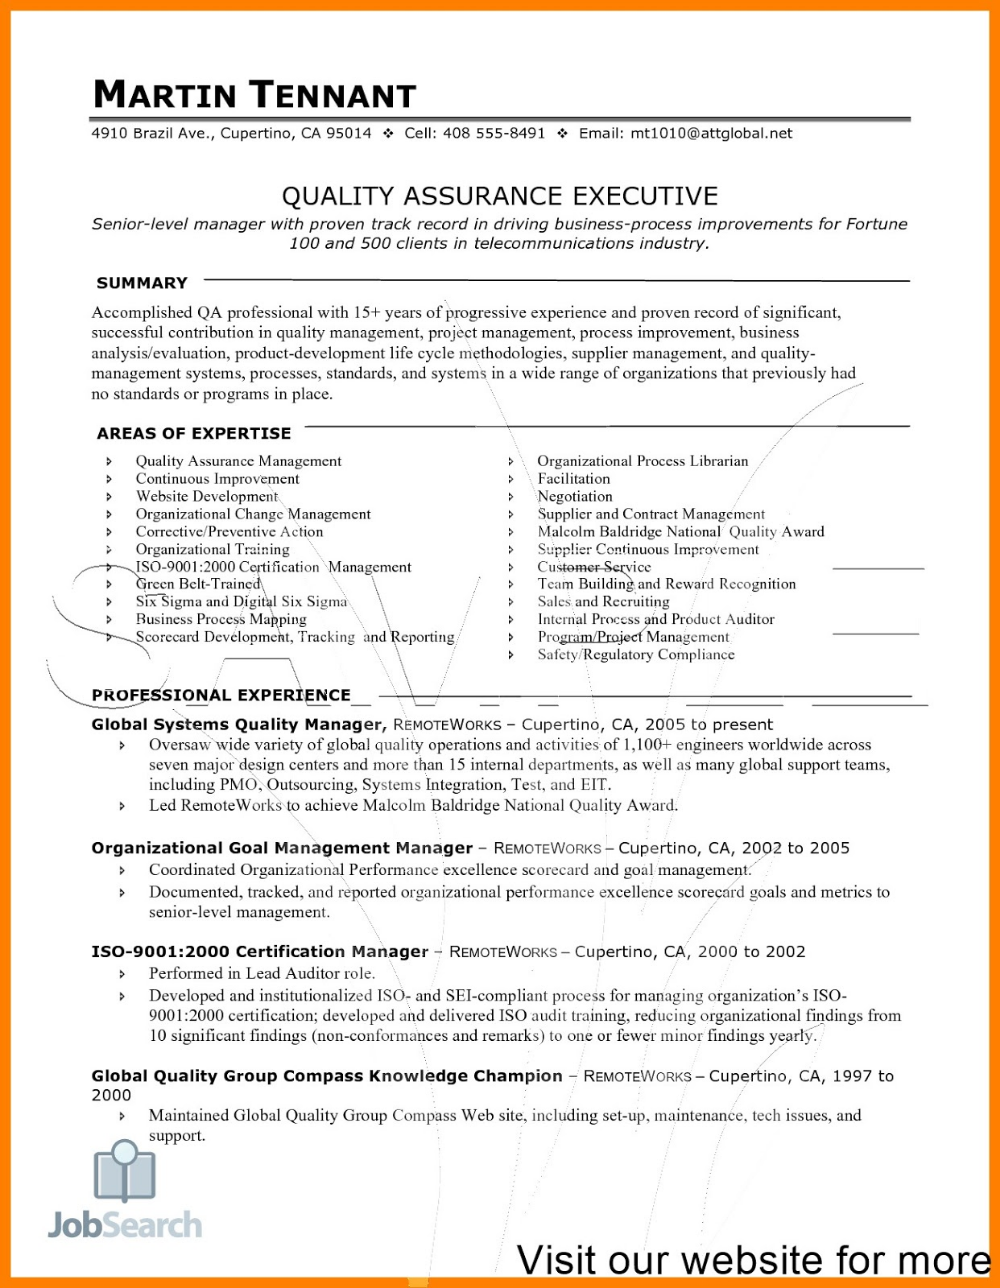 Software Quality Assurance Resume Examples 2020 Software Quality Assurance Resume Examples Software In 2020 Resume Examples Executive Resume Template Resume Software